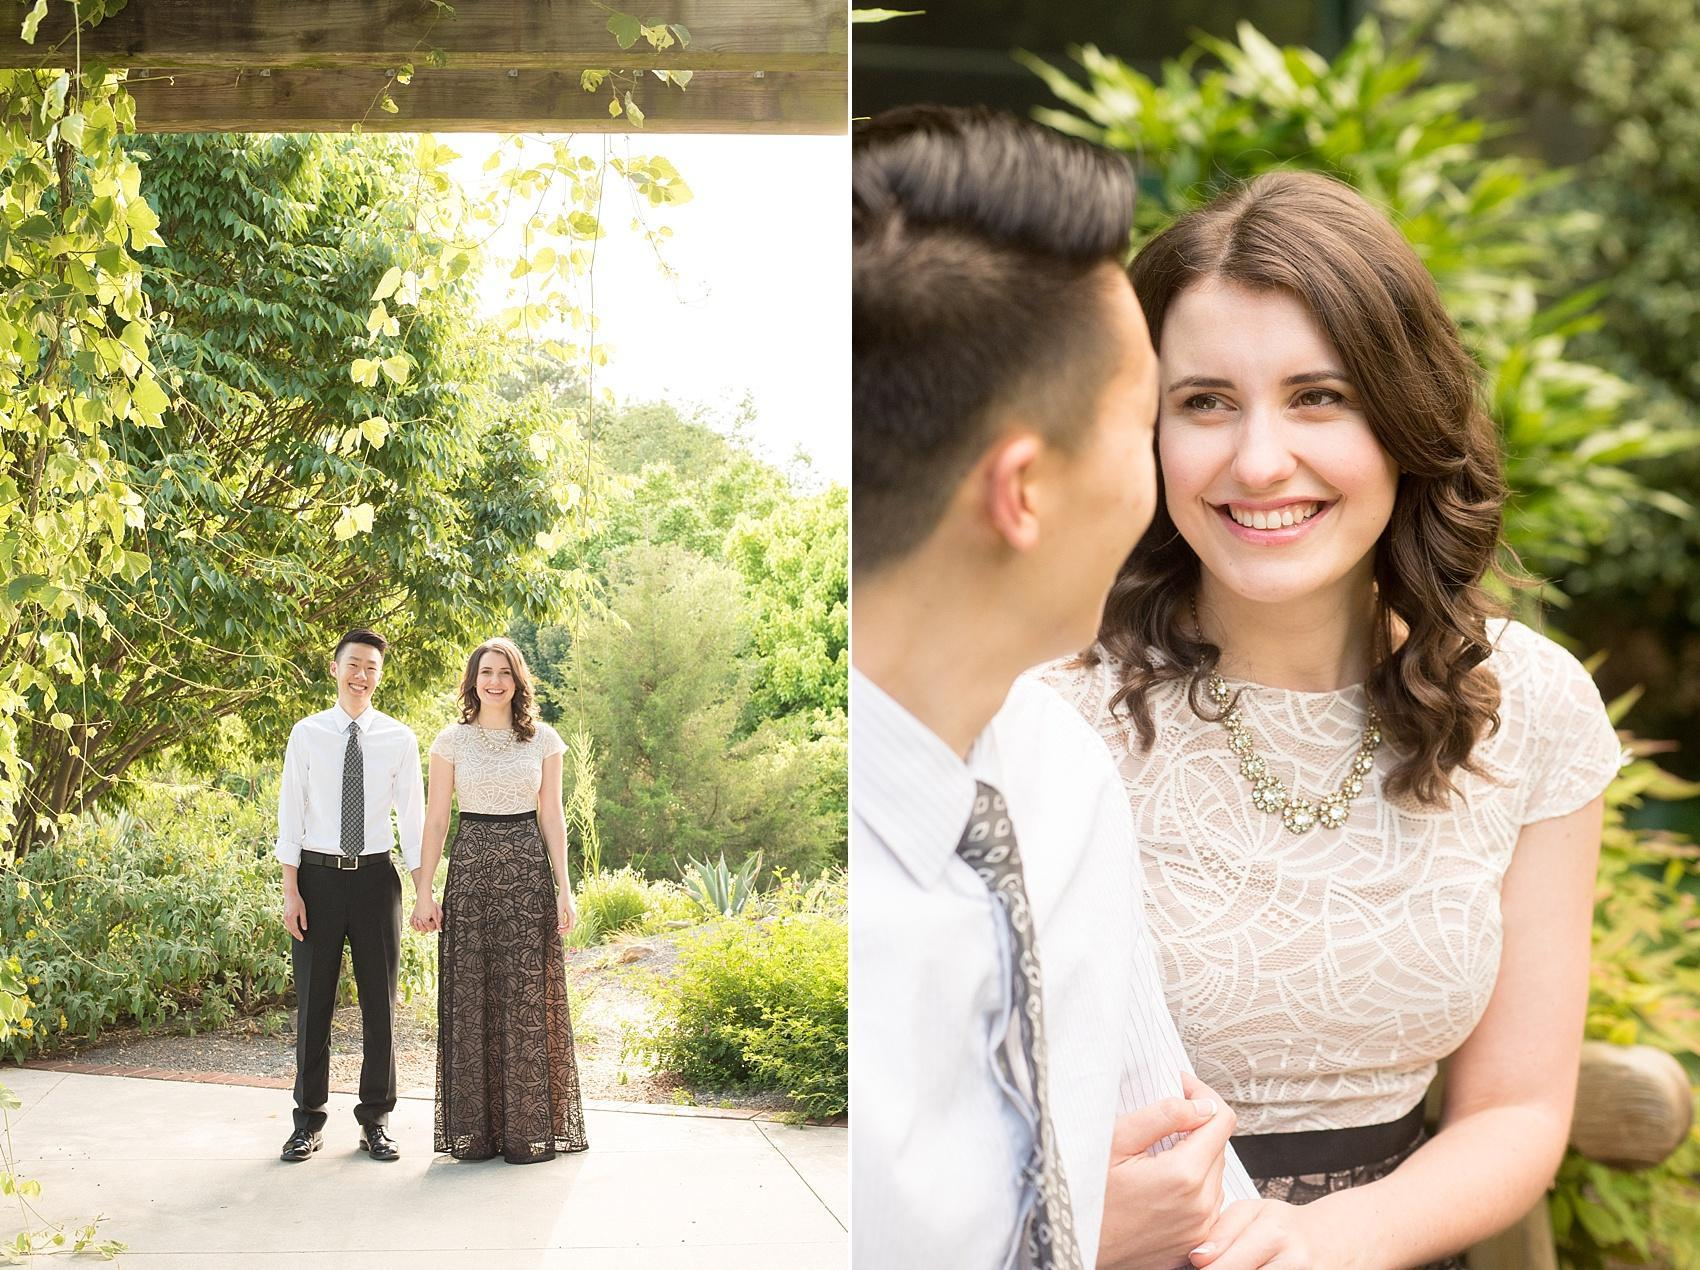 Raleigh North Carolina wedding photographer, Mikkel Paige Photography, photographs an engagement session at Raulston Arboretum at NC State campus during golden hour.